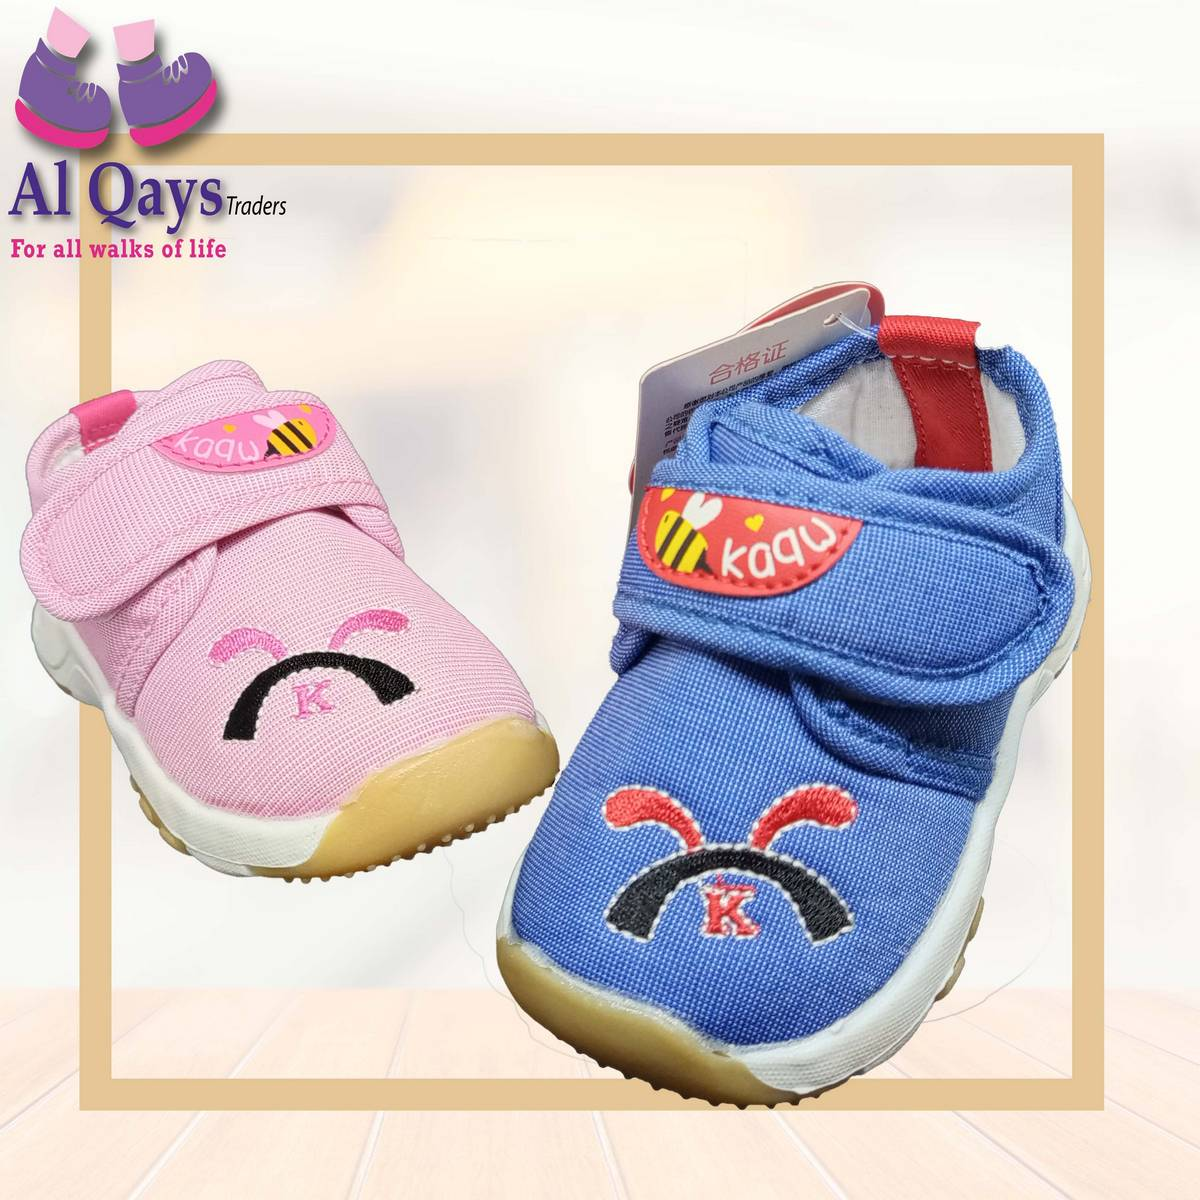 Premium Quality Unisex Toddler shoes (baby and baba) for both baby girl and baby boy shoes - age 6 to 2 years child shoes - pink and blue color